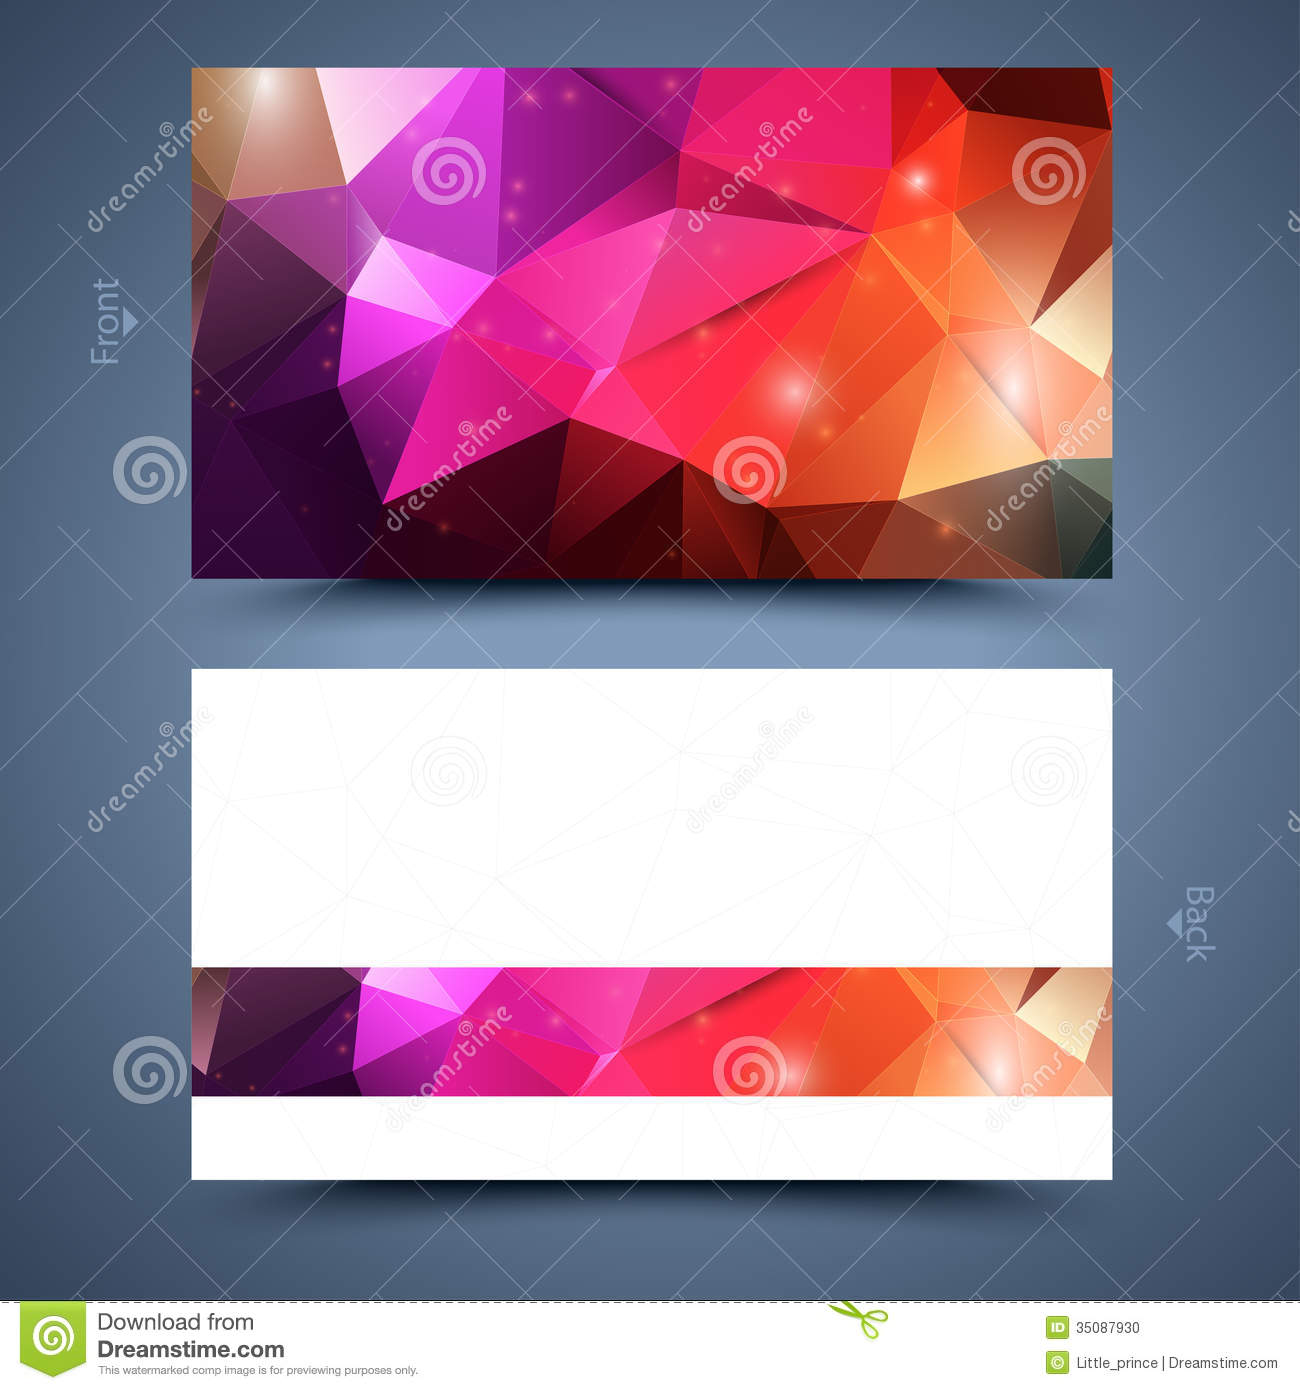 Color business card template abstract background stock vector color business card template abstract background accmission Image collections